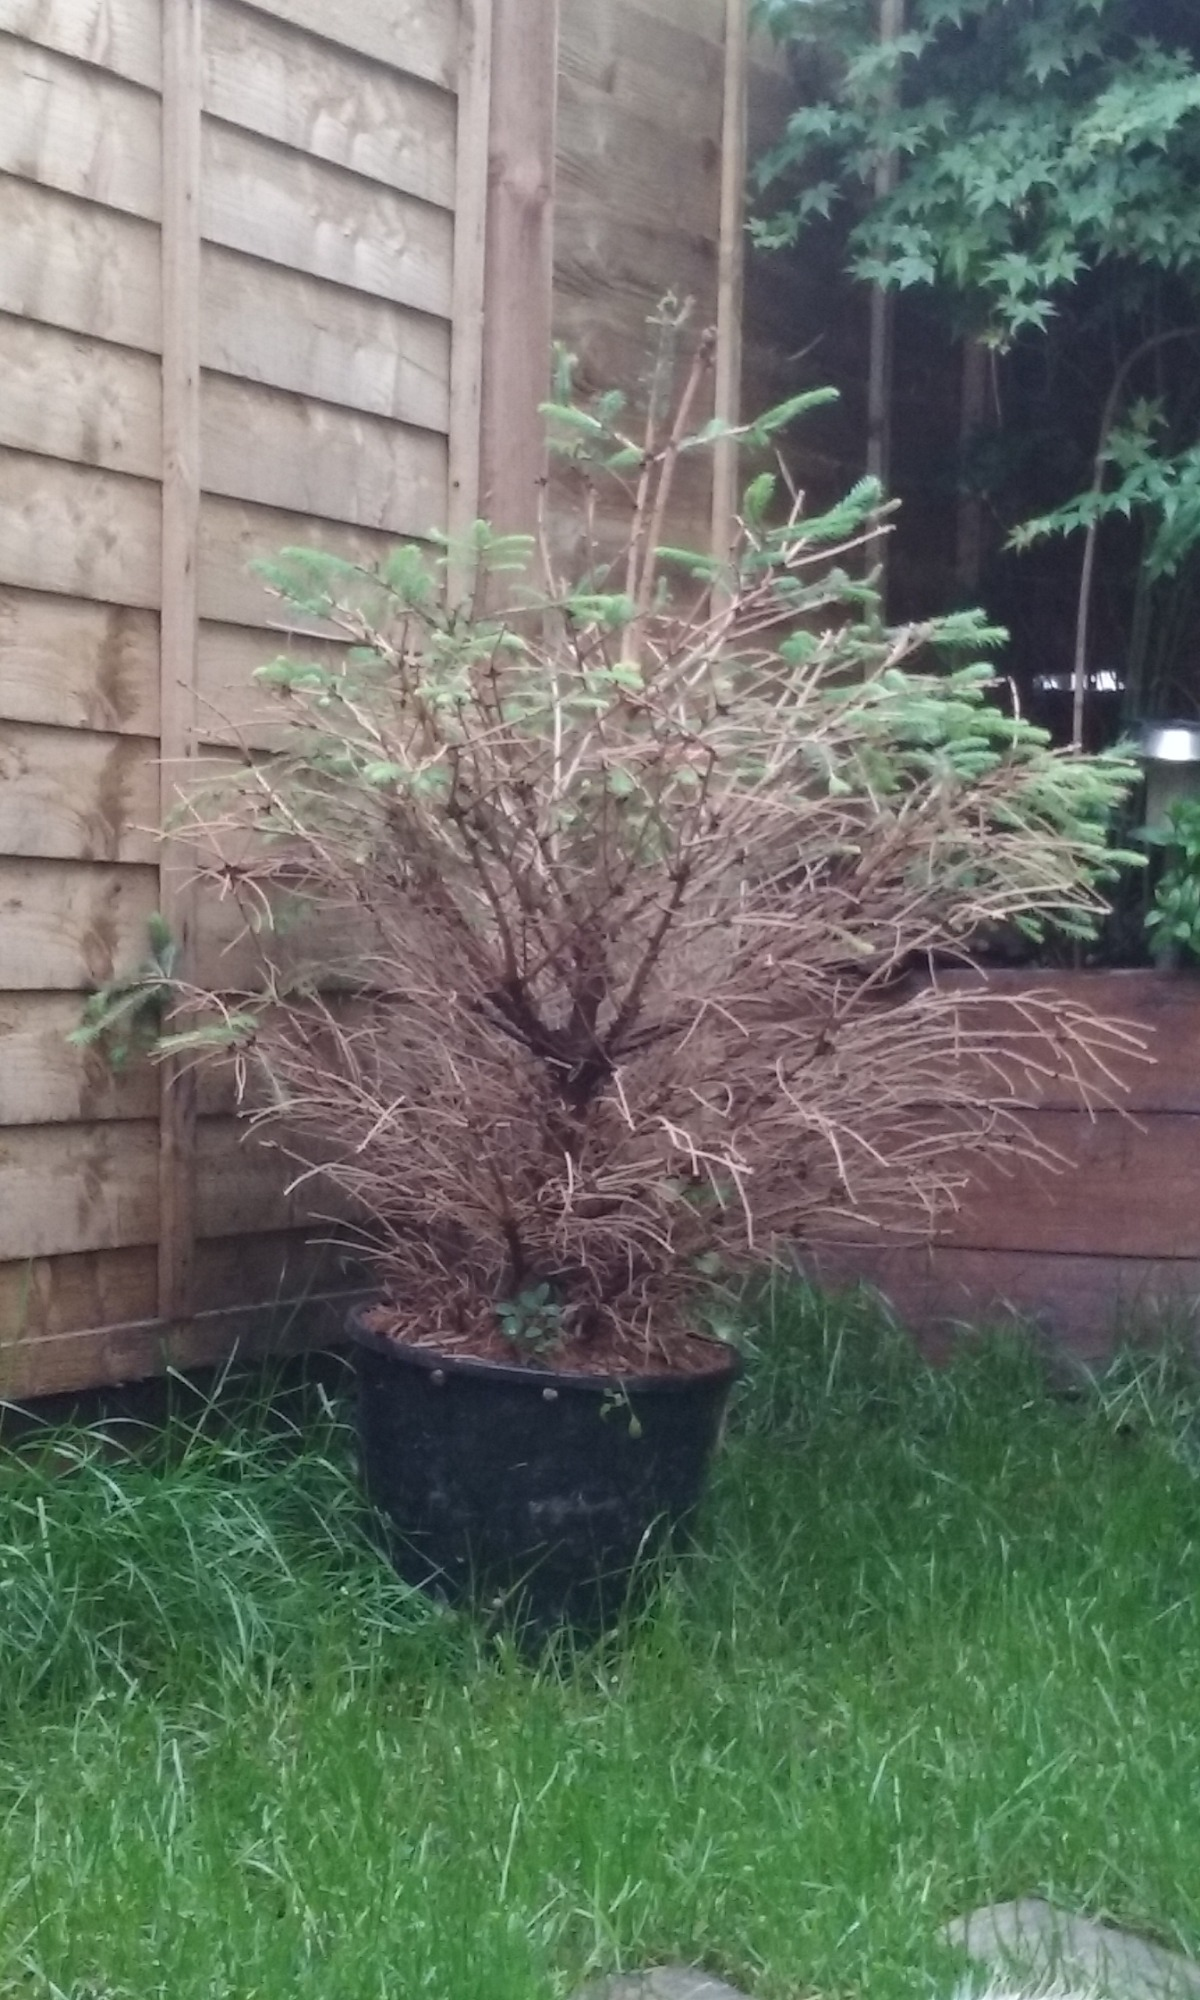 But I Ve Noticed Bottom Branches Are Not Growing Want